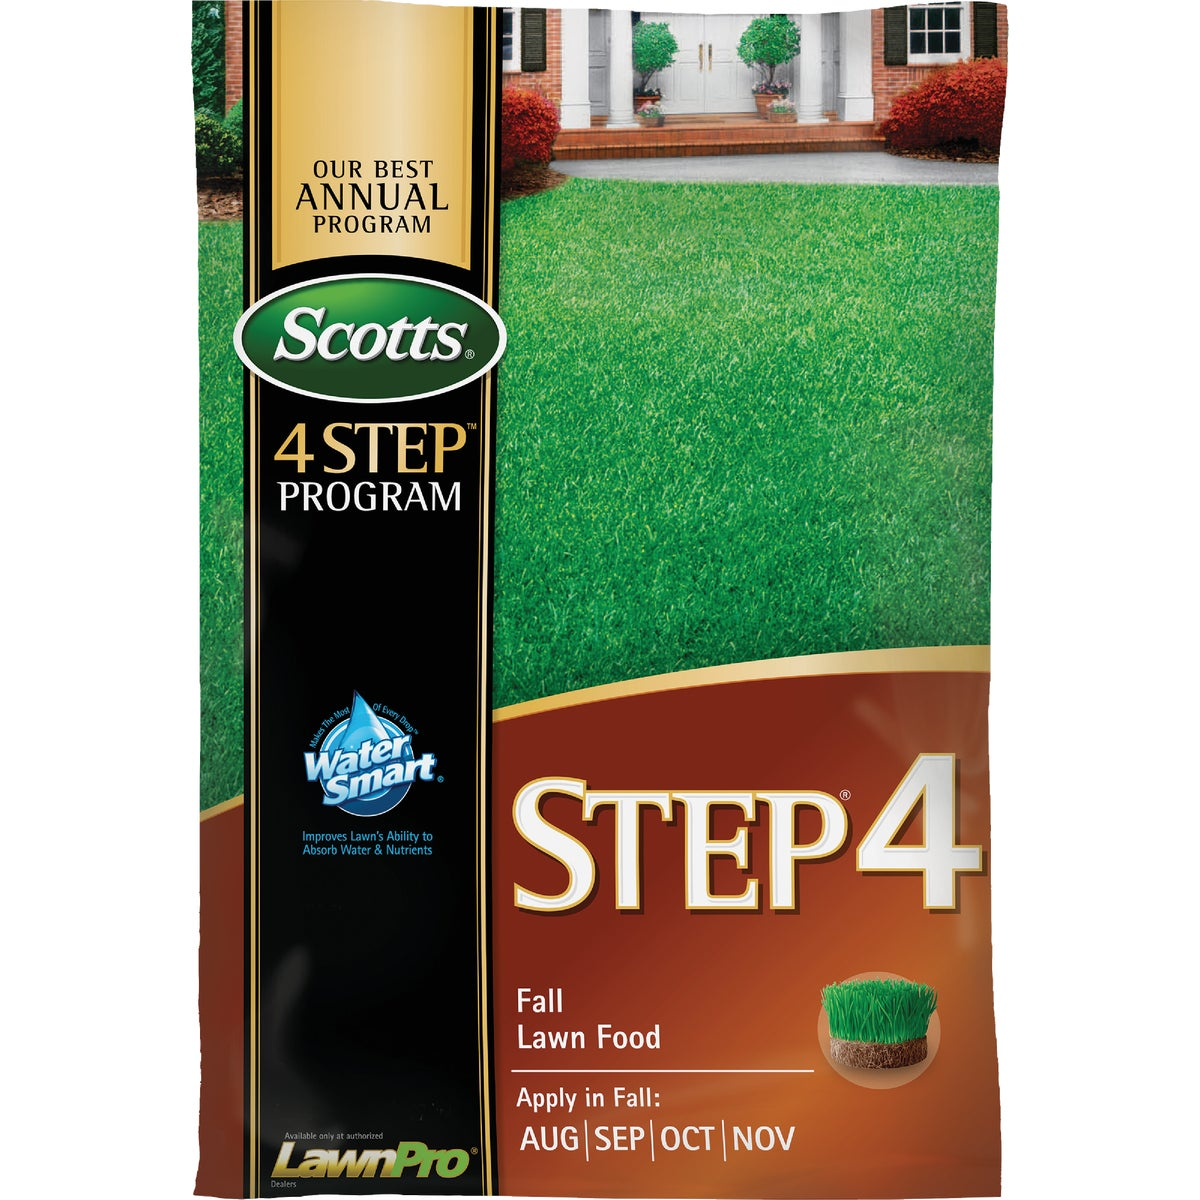 15M STEP 4 FERTILIZER - 2515 by Scotts Company